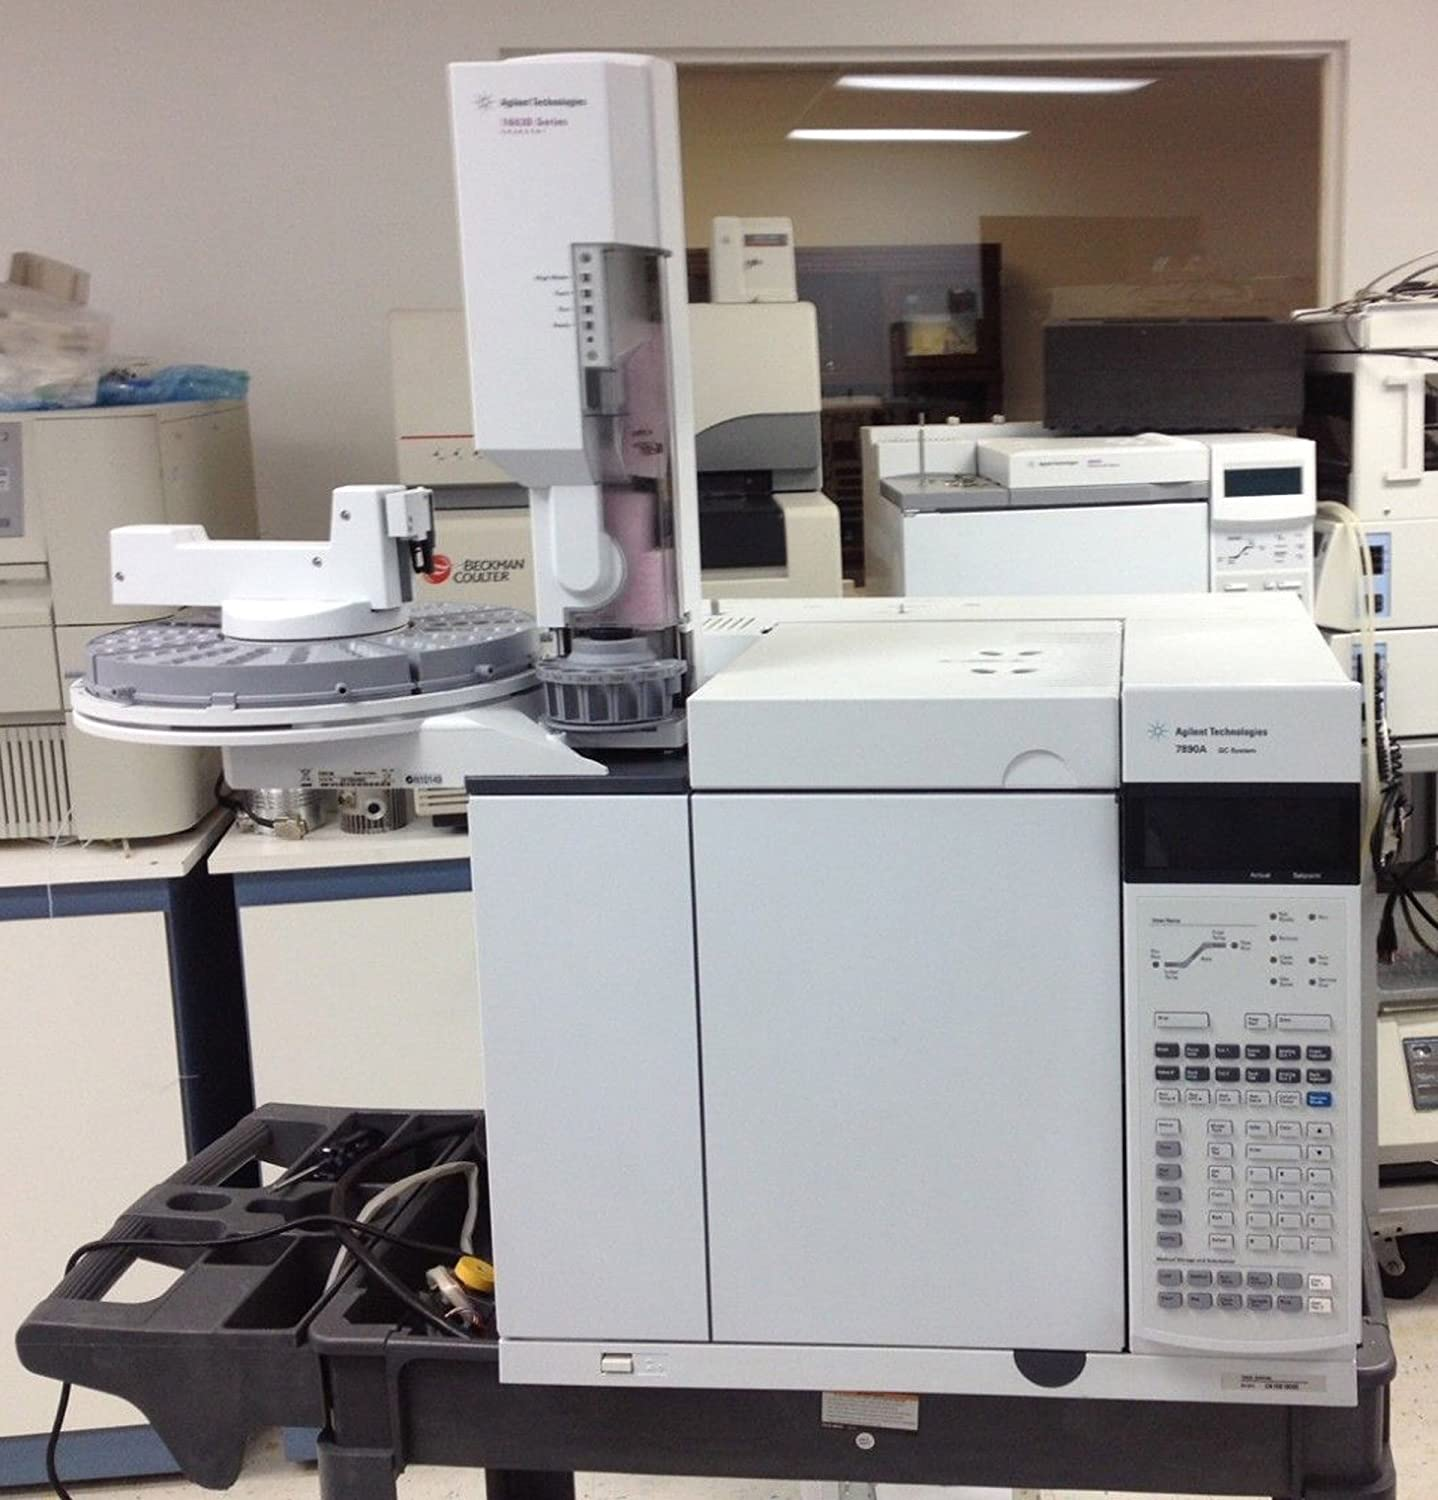 Agilent Technologies 7890 GC with FID Detector and 7683B Injector and Tray: Amazon.com: Industrial & Scientific